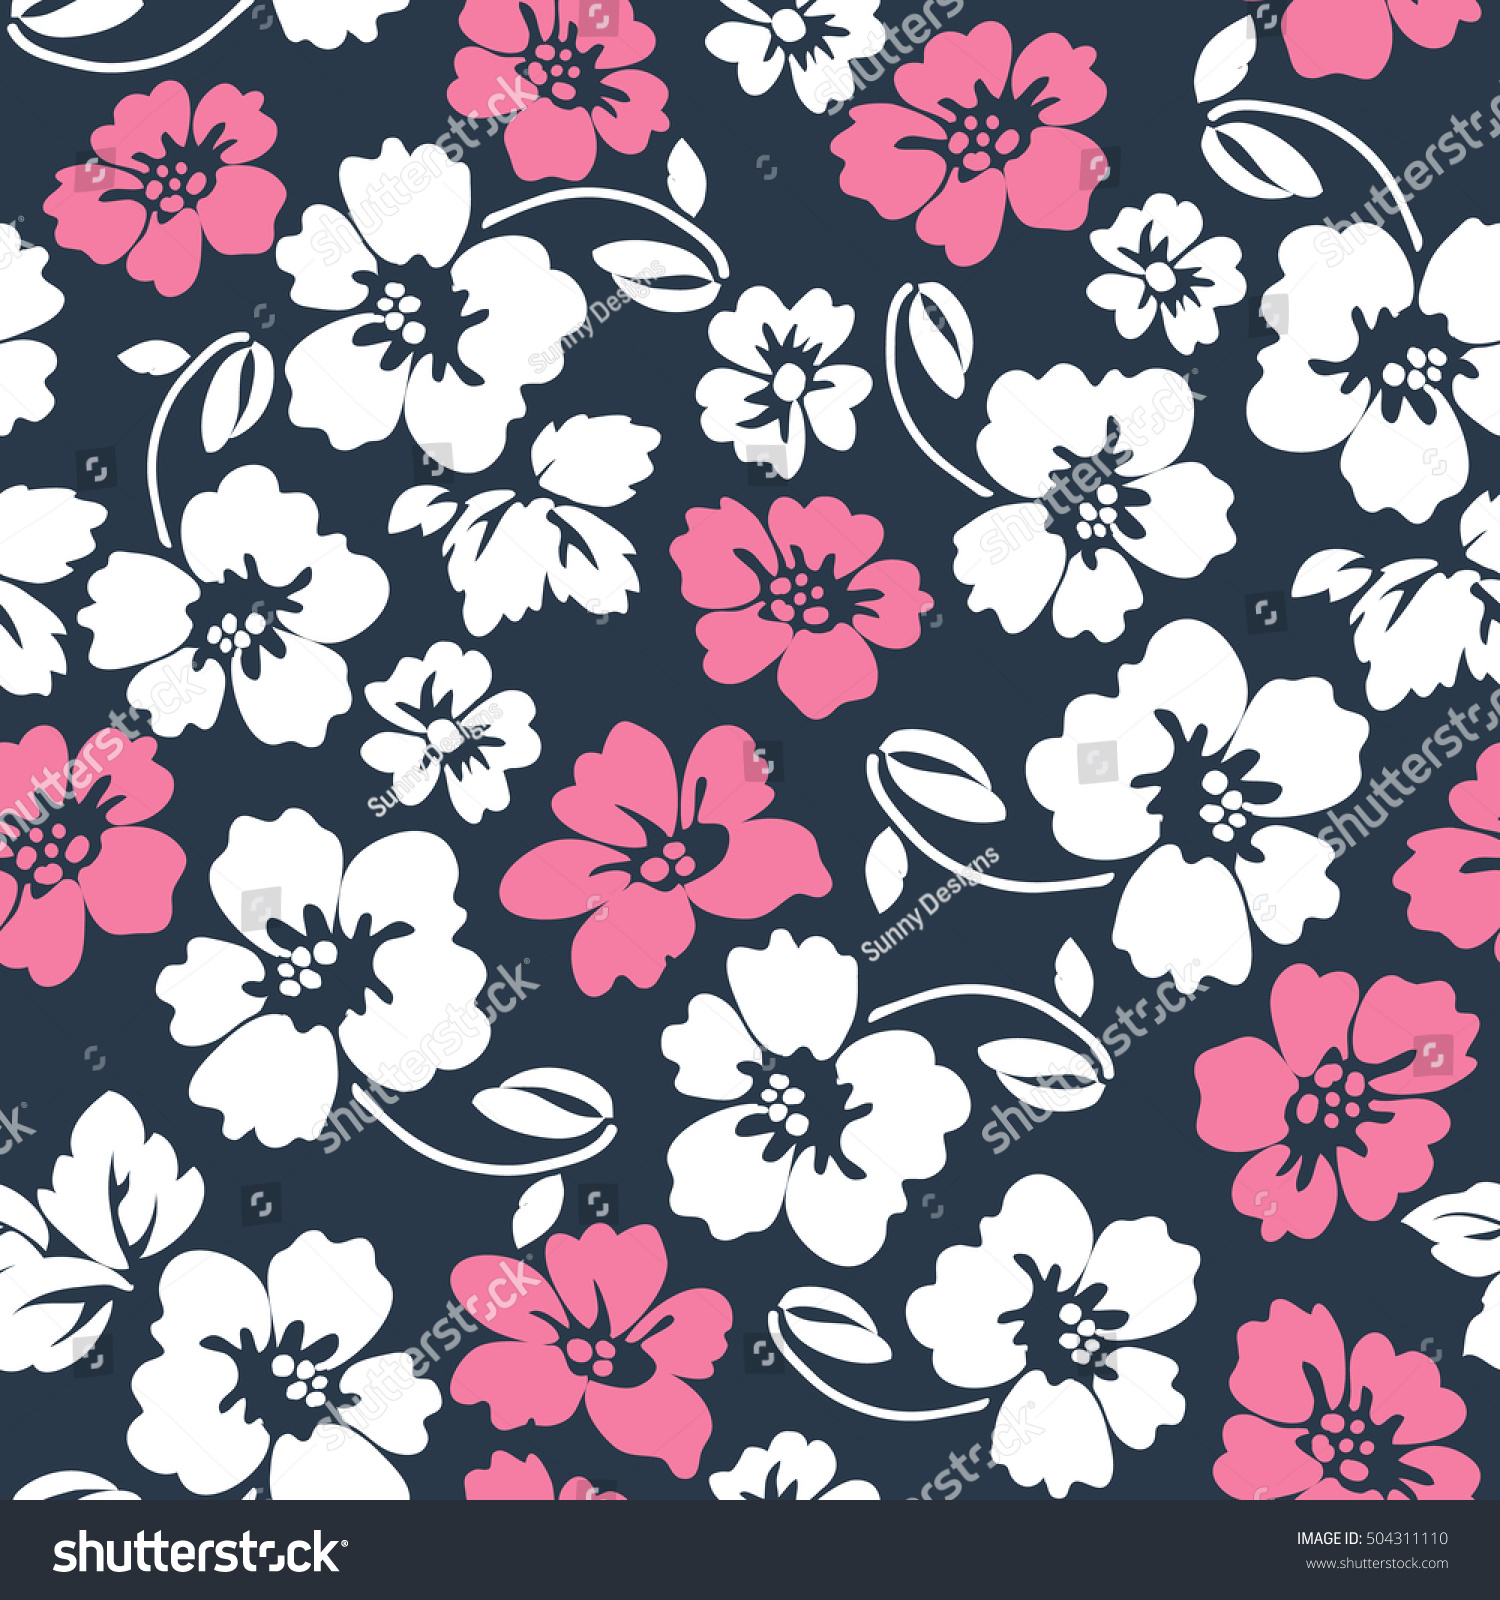 cute floral print backgrounds wwwpixsharkcom images